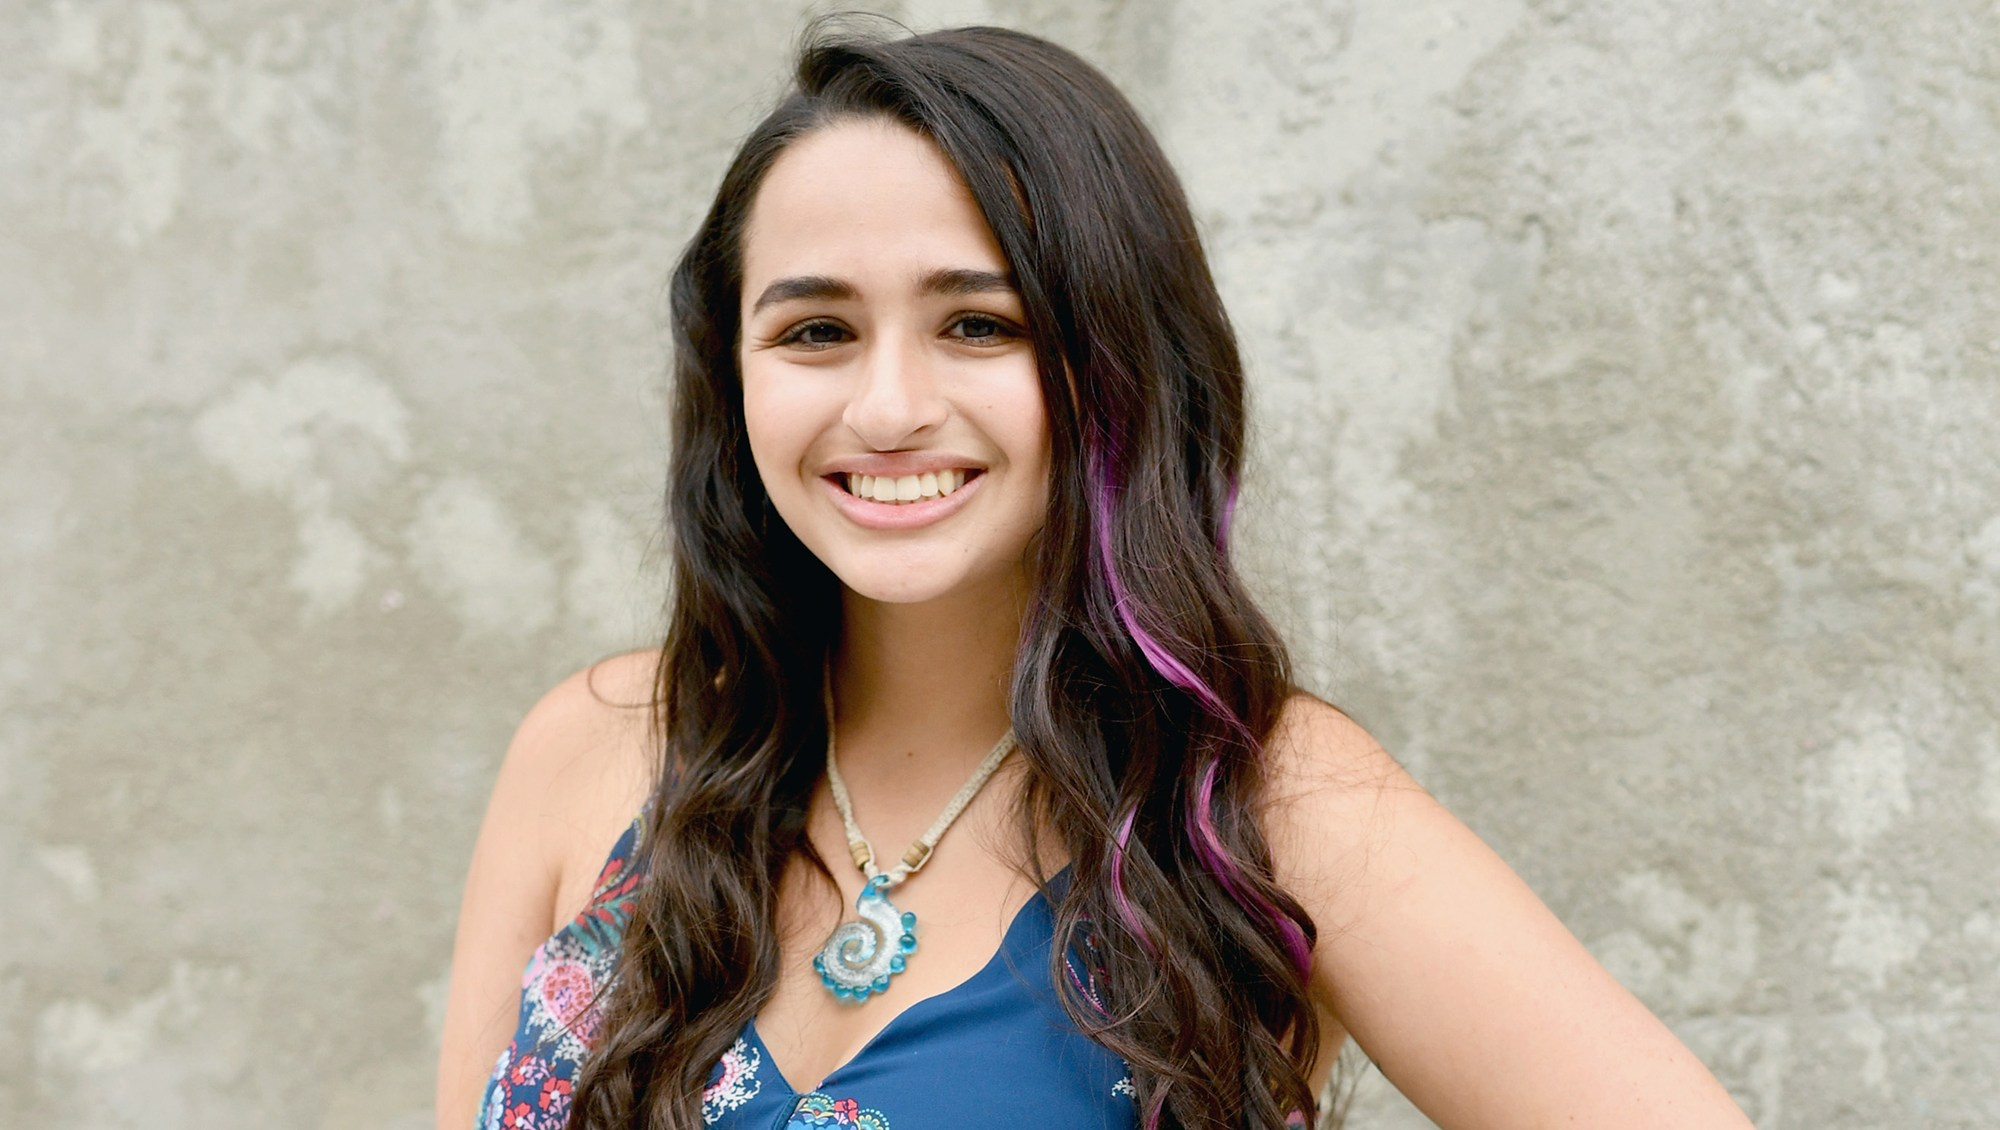 Jazz Jennings: 25 Things You Don't Know About Me